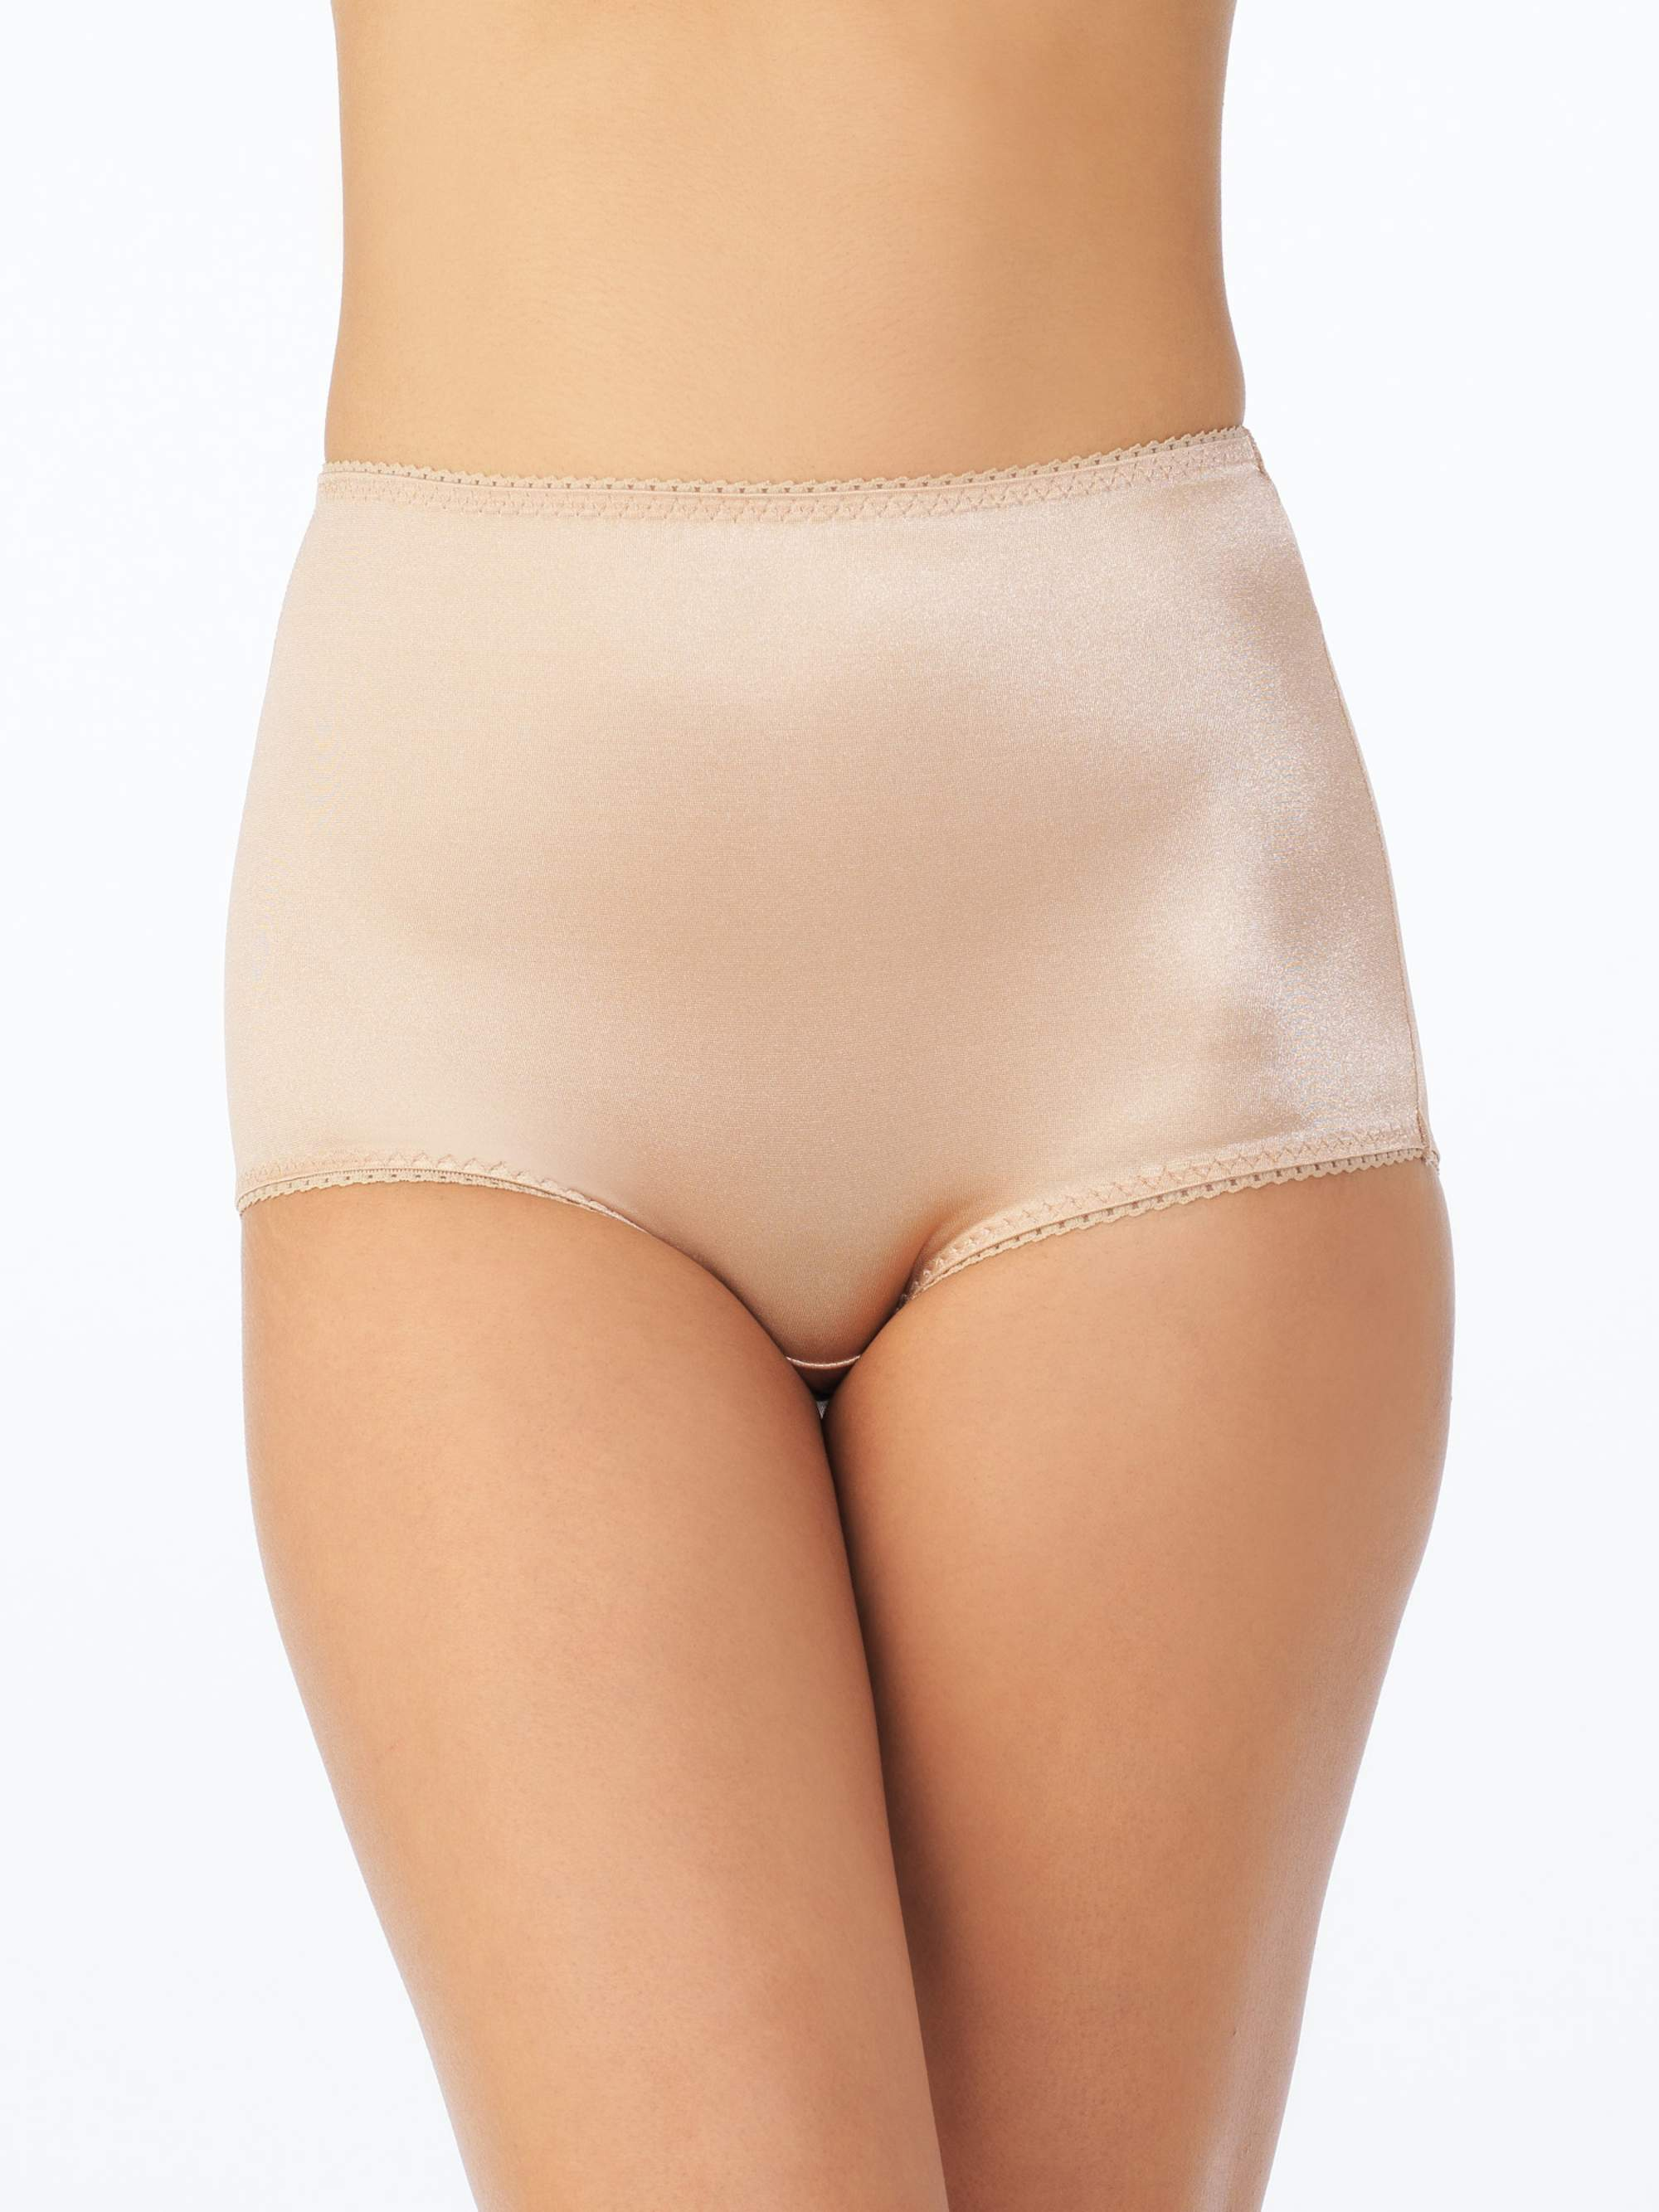 Women's Undershapers Light Control Brief Panties, style 40001